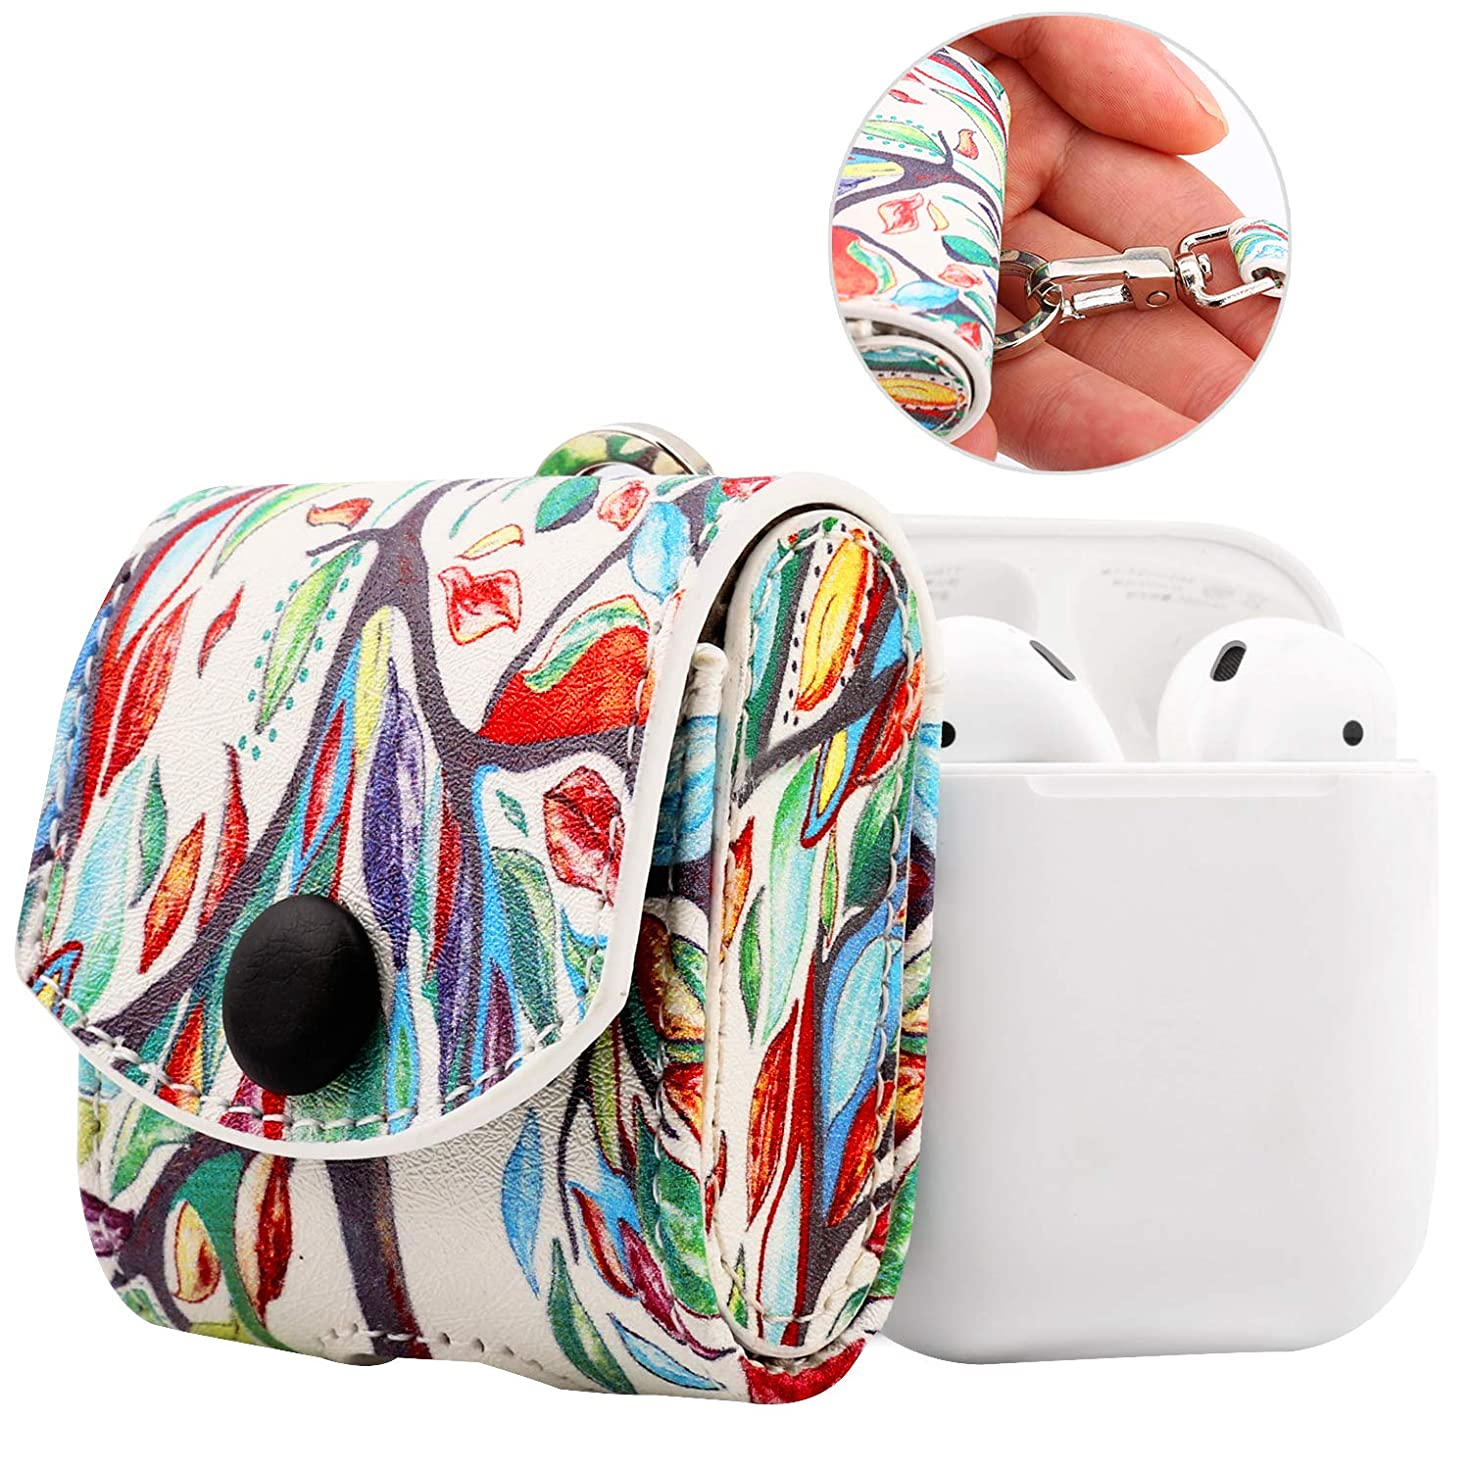 MoKo Case Fit AirPods 1/AirPods 2, Snap Closure Protective Cover Carrying Pouch Pocket, with Holding Strap, for Apple AirPods 1 & AirPods 2 Charging Case - Lucky Tree